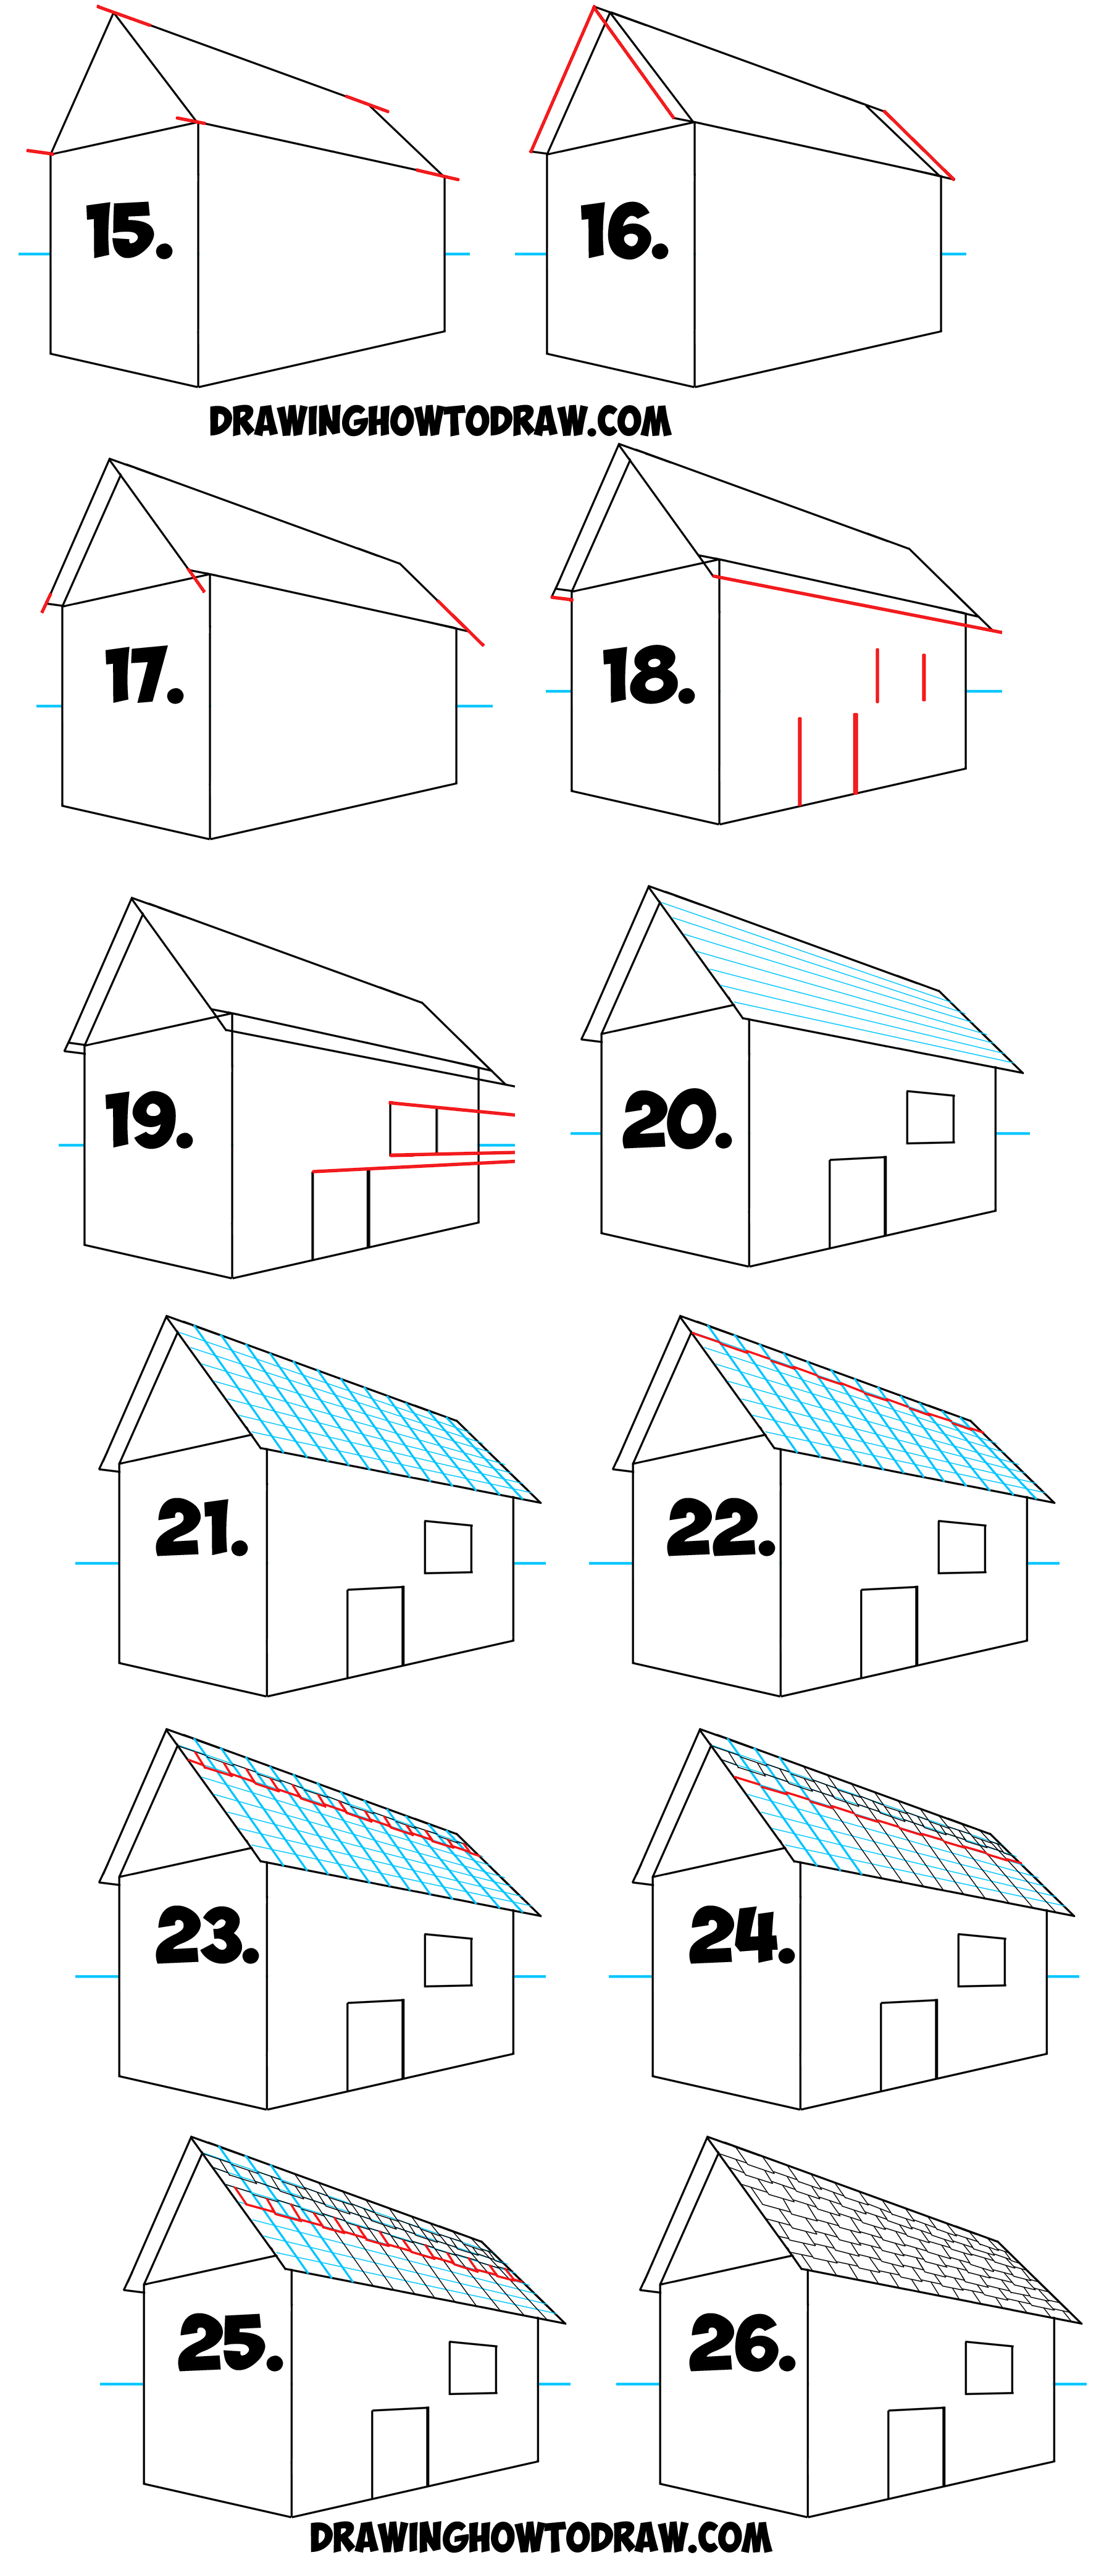 Roofing a house step by step architectural designs for How to draw a two story house step by step